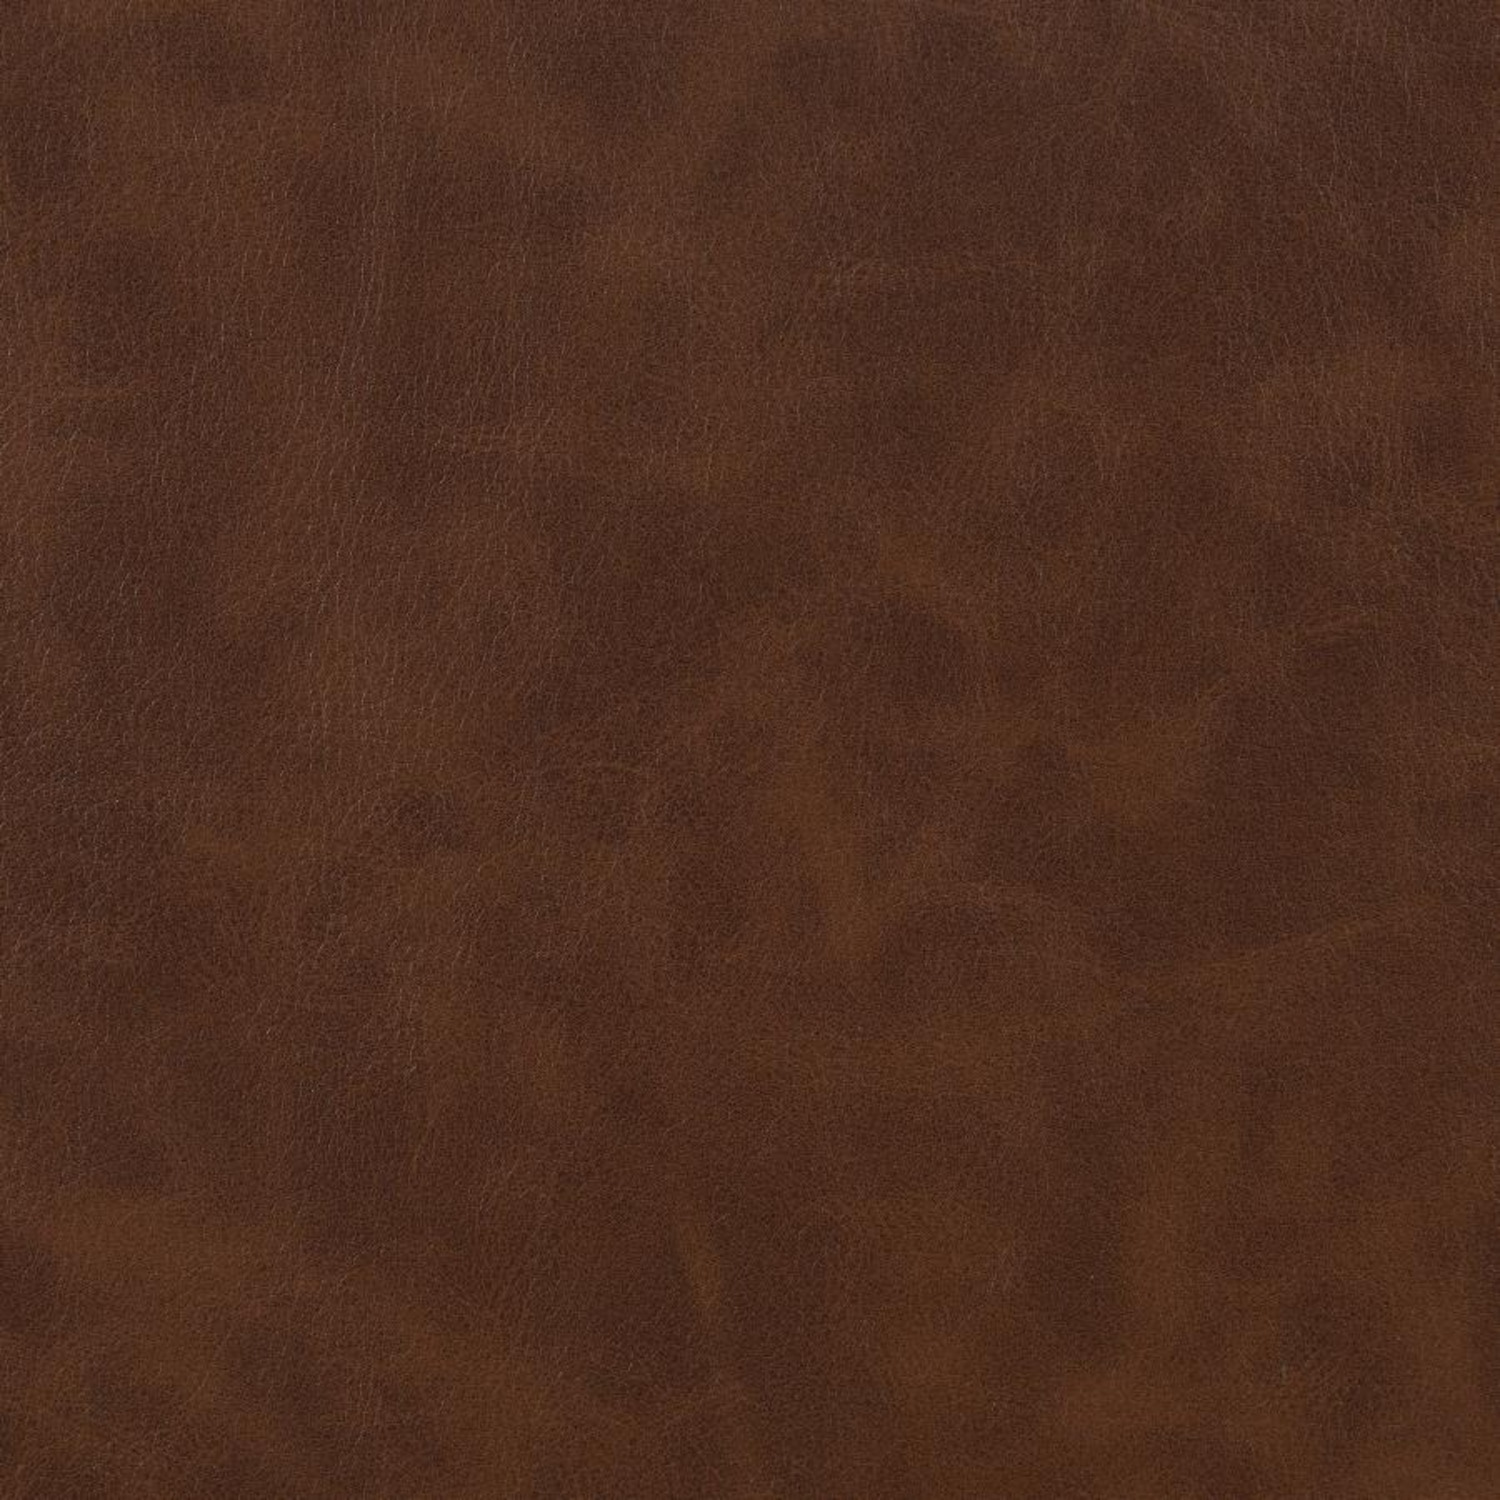 Office Chair In Tufted Brown Leatherette Finish - image-6